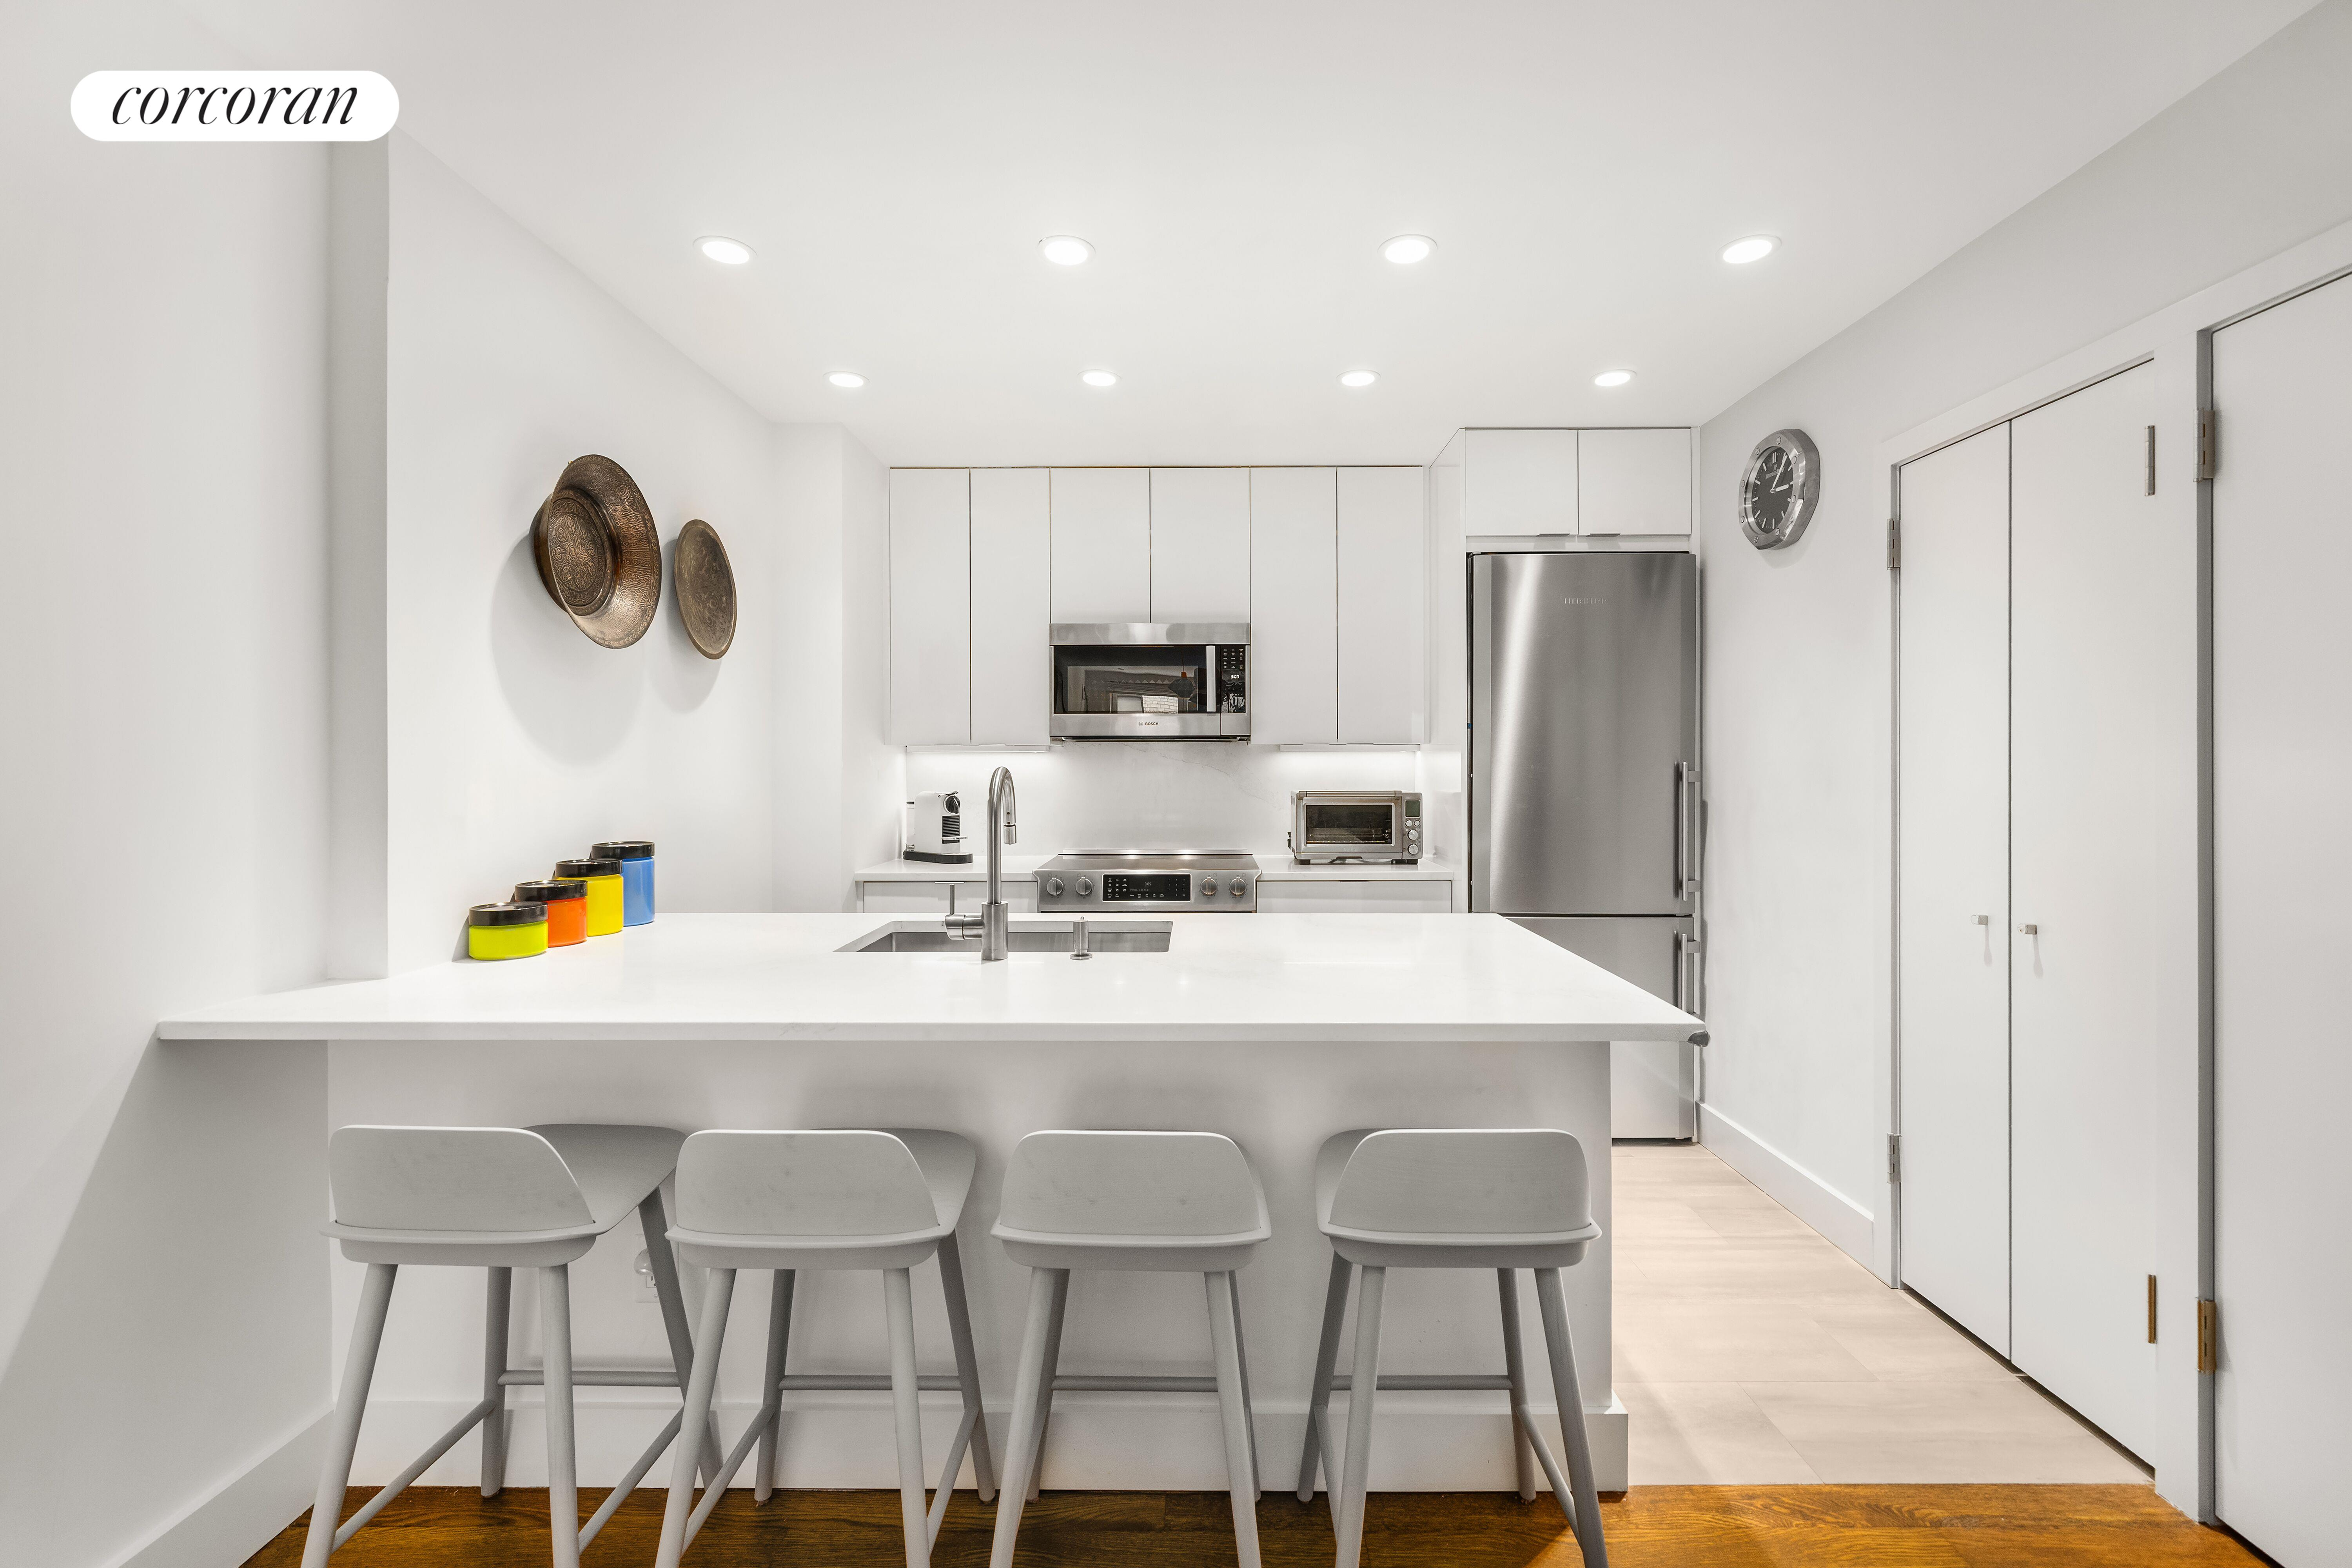 668 WASHINGTON ST, 2A, Dining Room